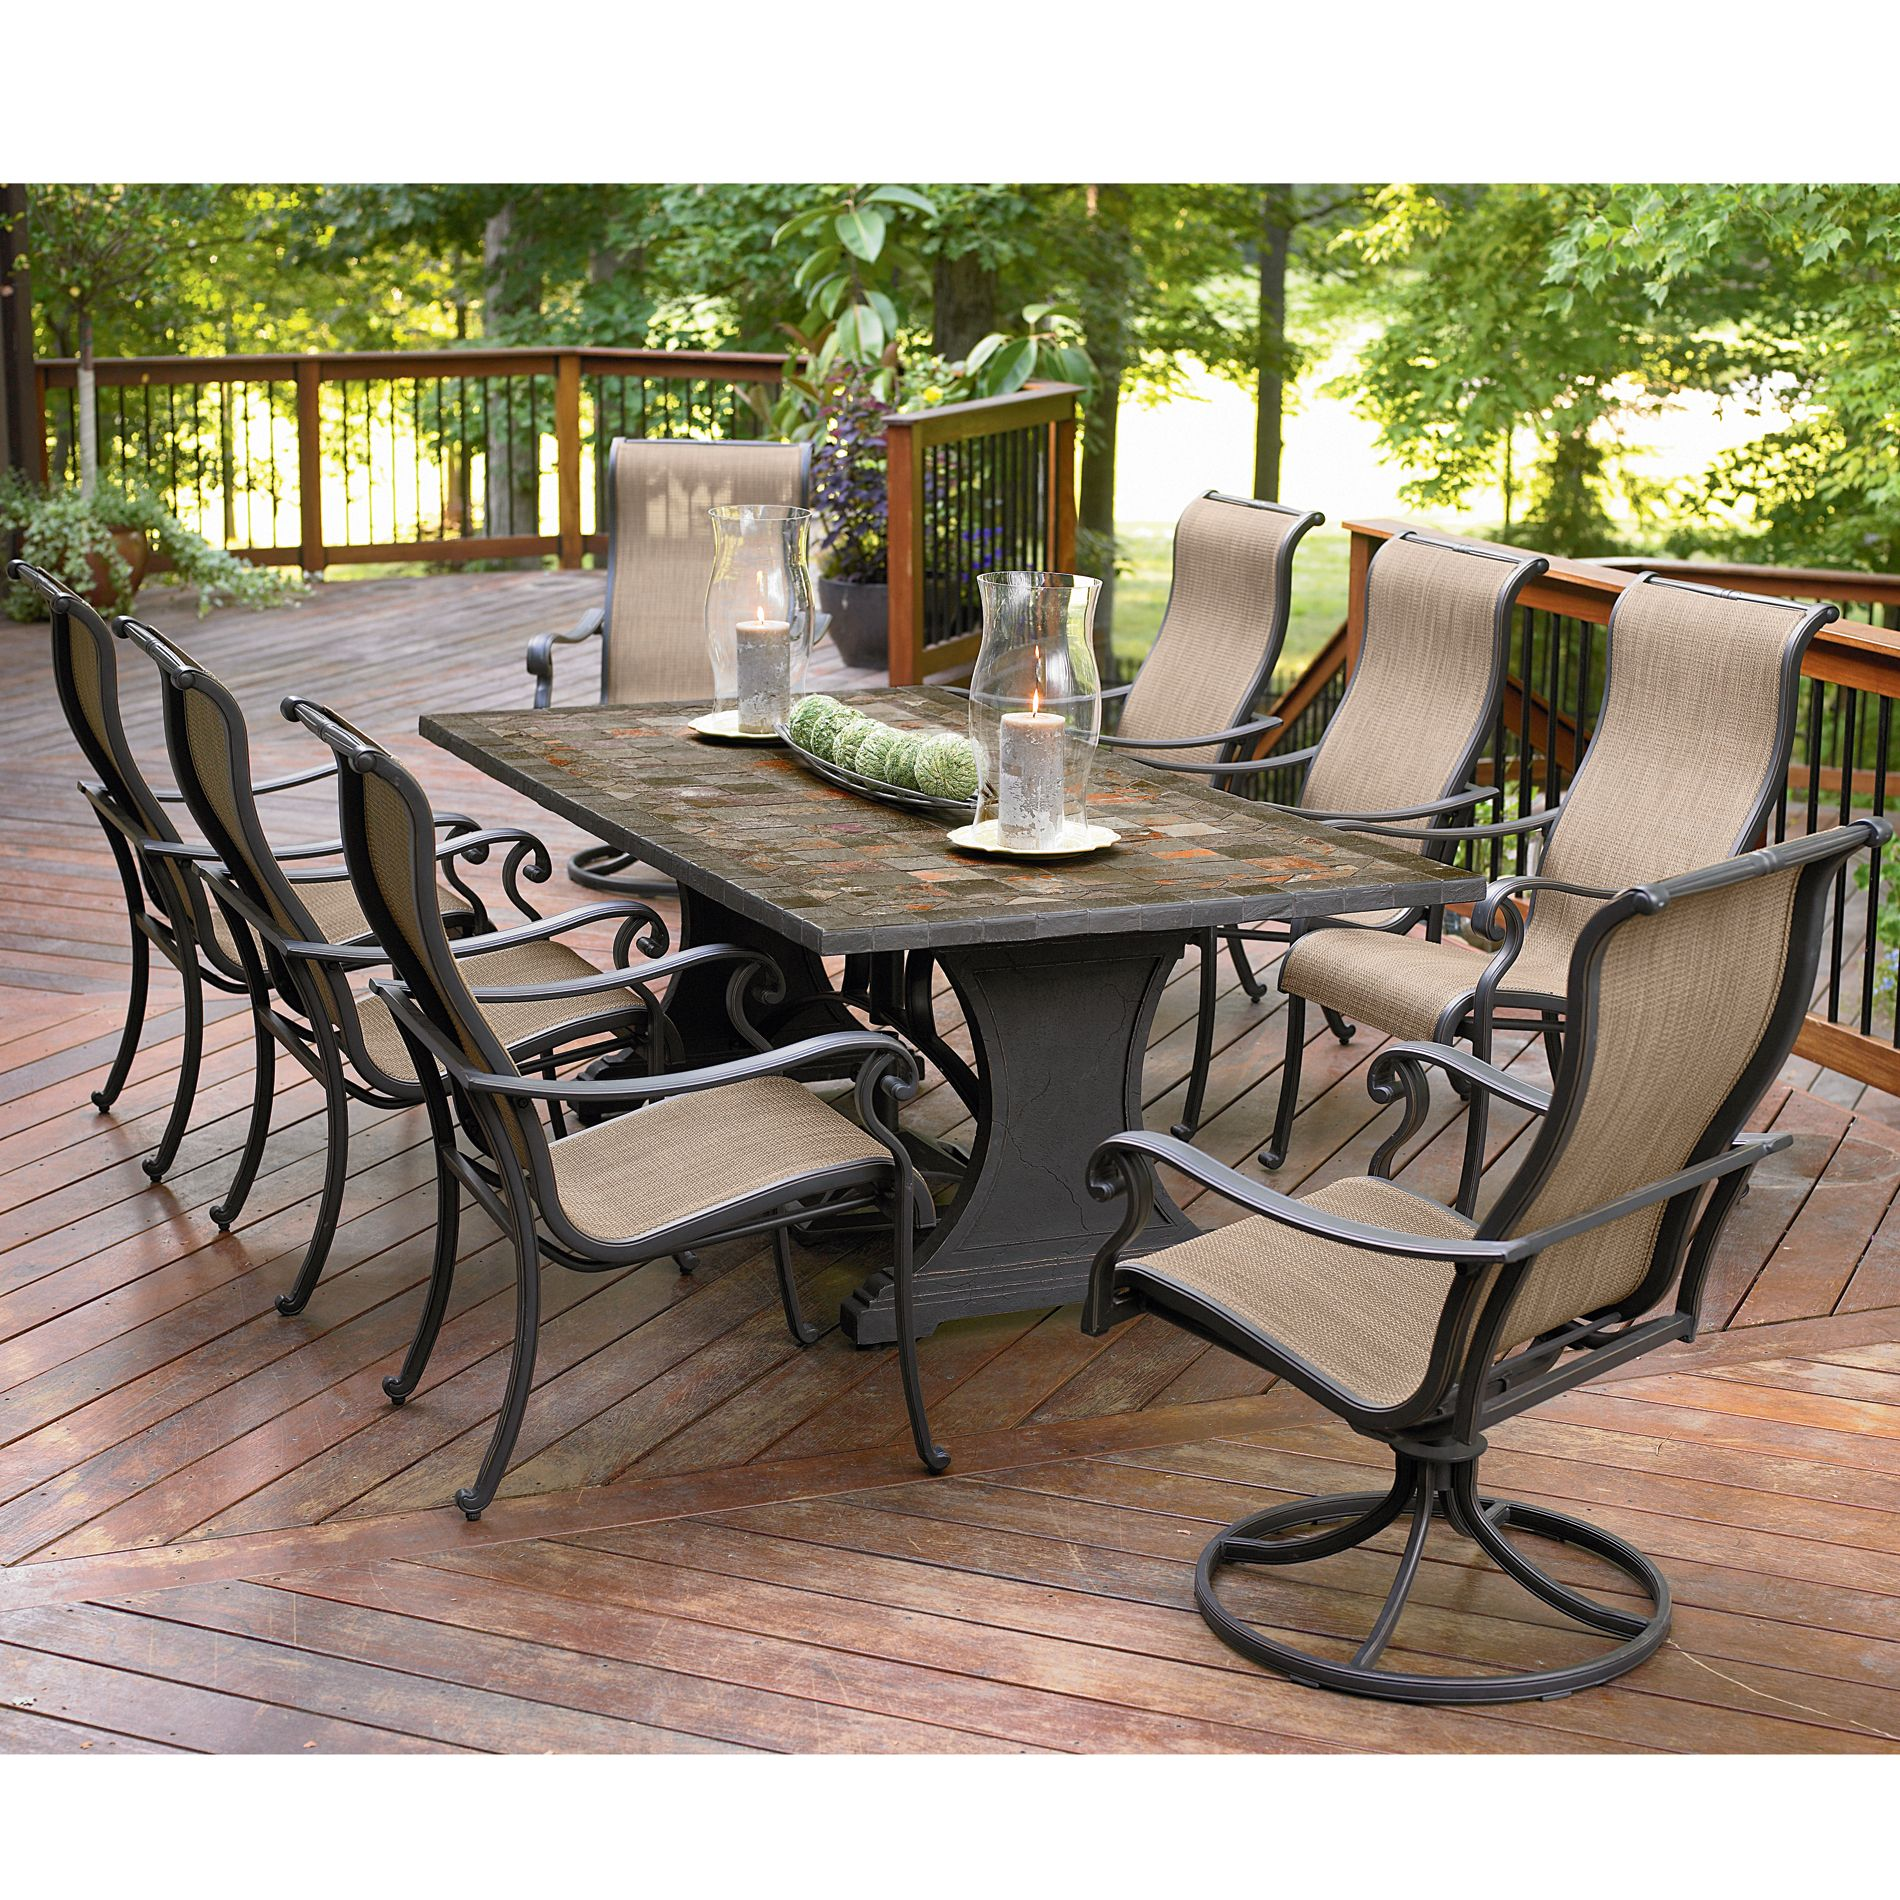 Outdoor Dining Chairs Sears